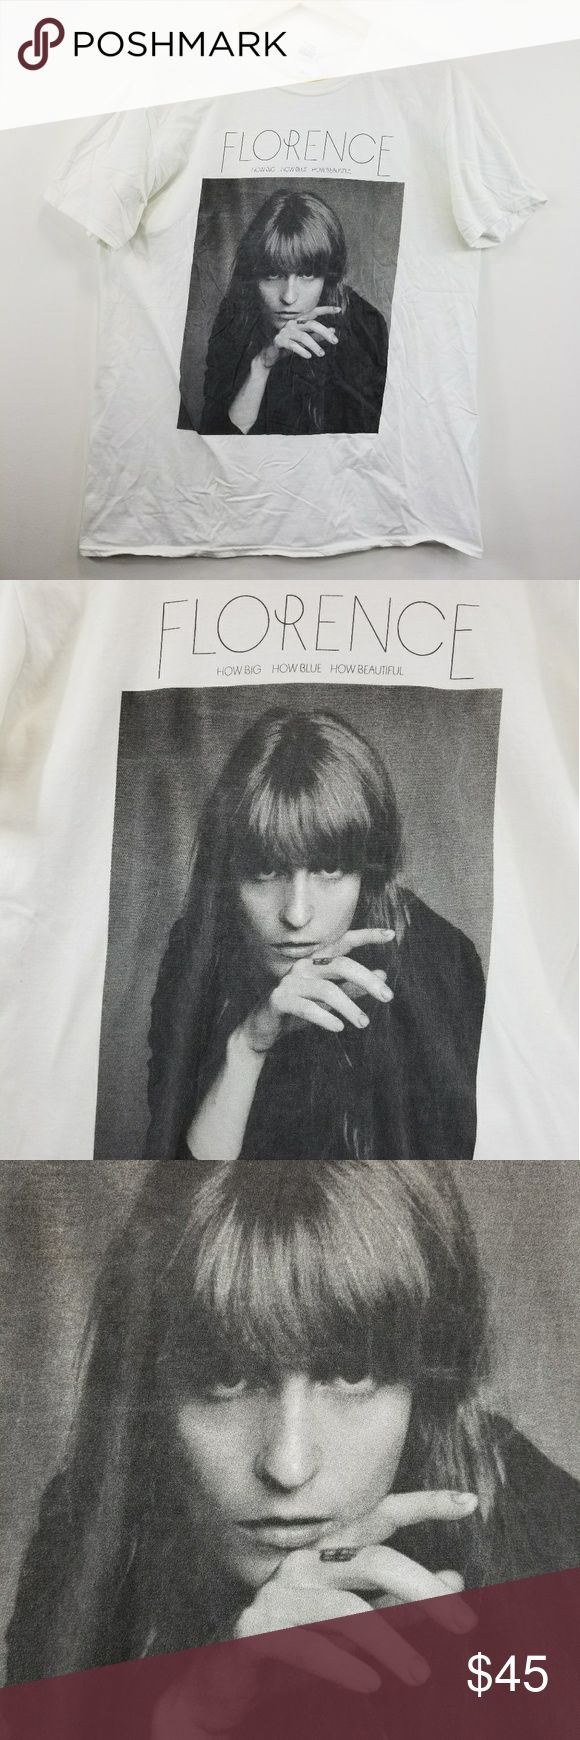 Florence + The Machine Concert T Shirt 2015 2016 Florence + The Machine T Shirt  How Big How Blue How Beautiful Concert Tour 2015 - 2016  Discoloration on back right side. See photos. Gildan Tops Tees - Short Sleeve